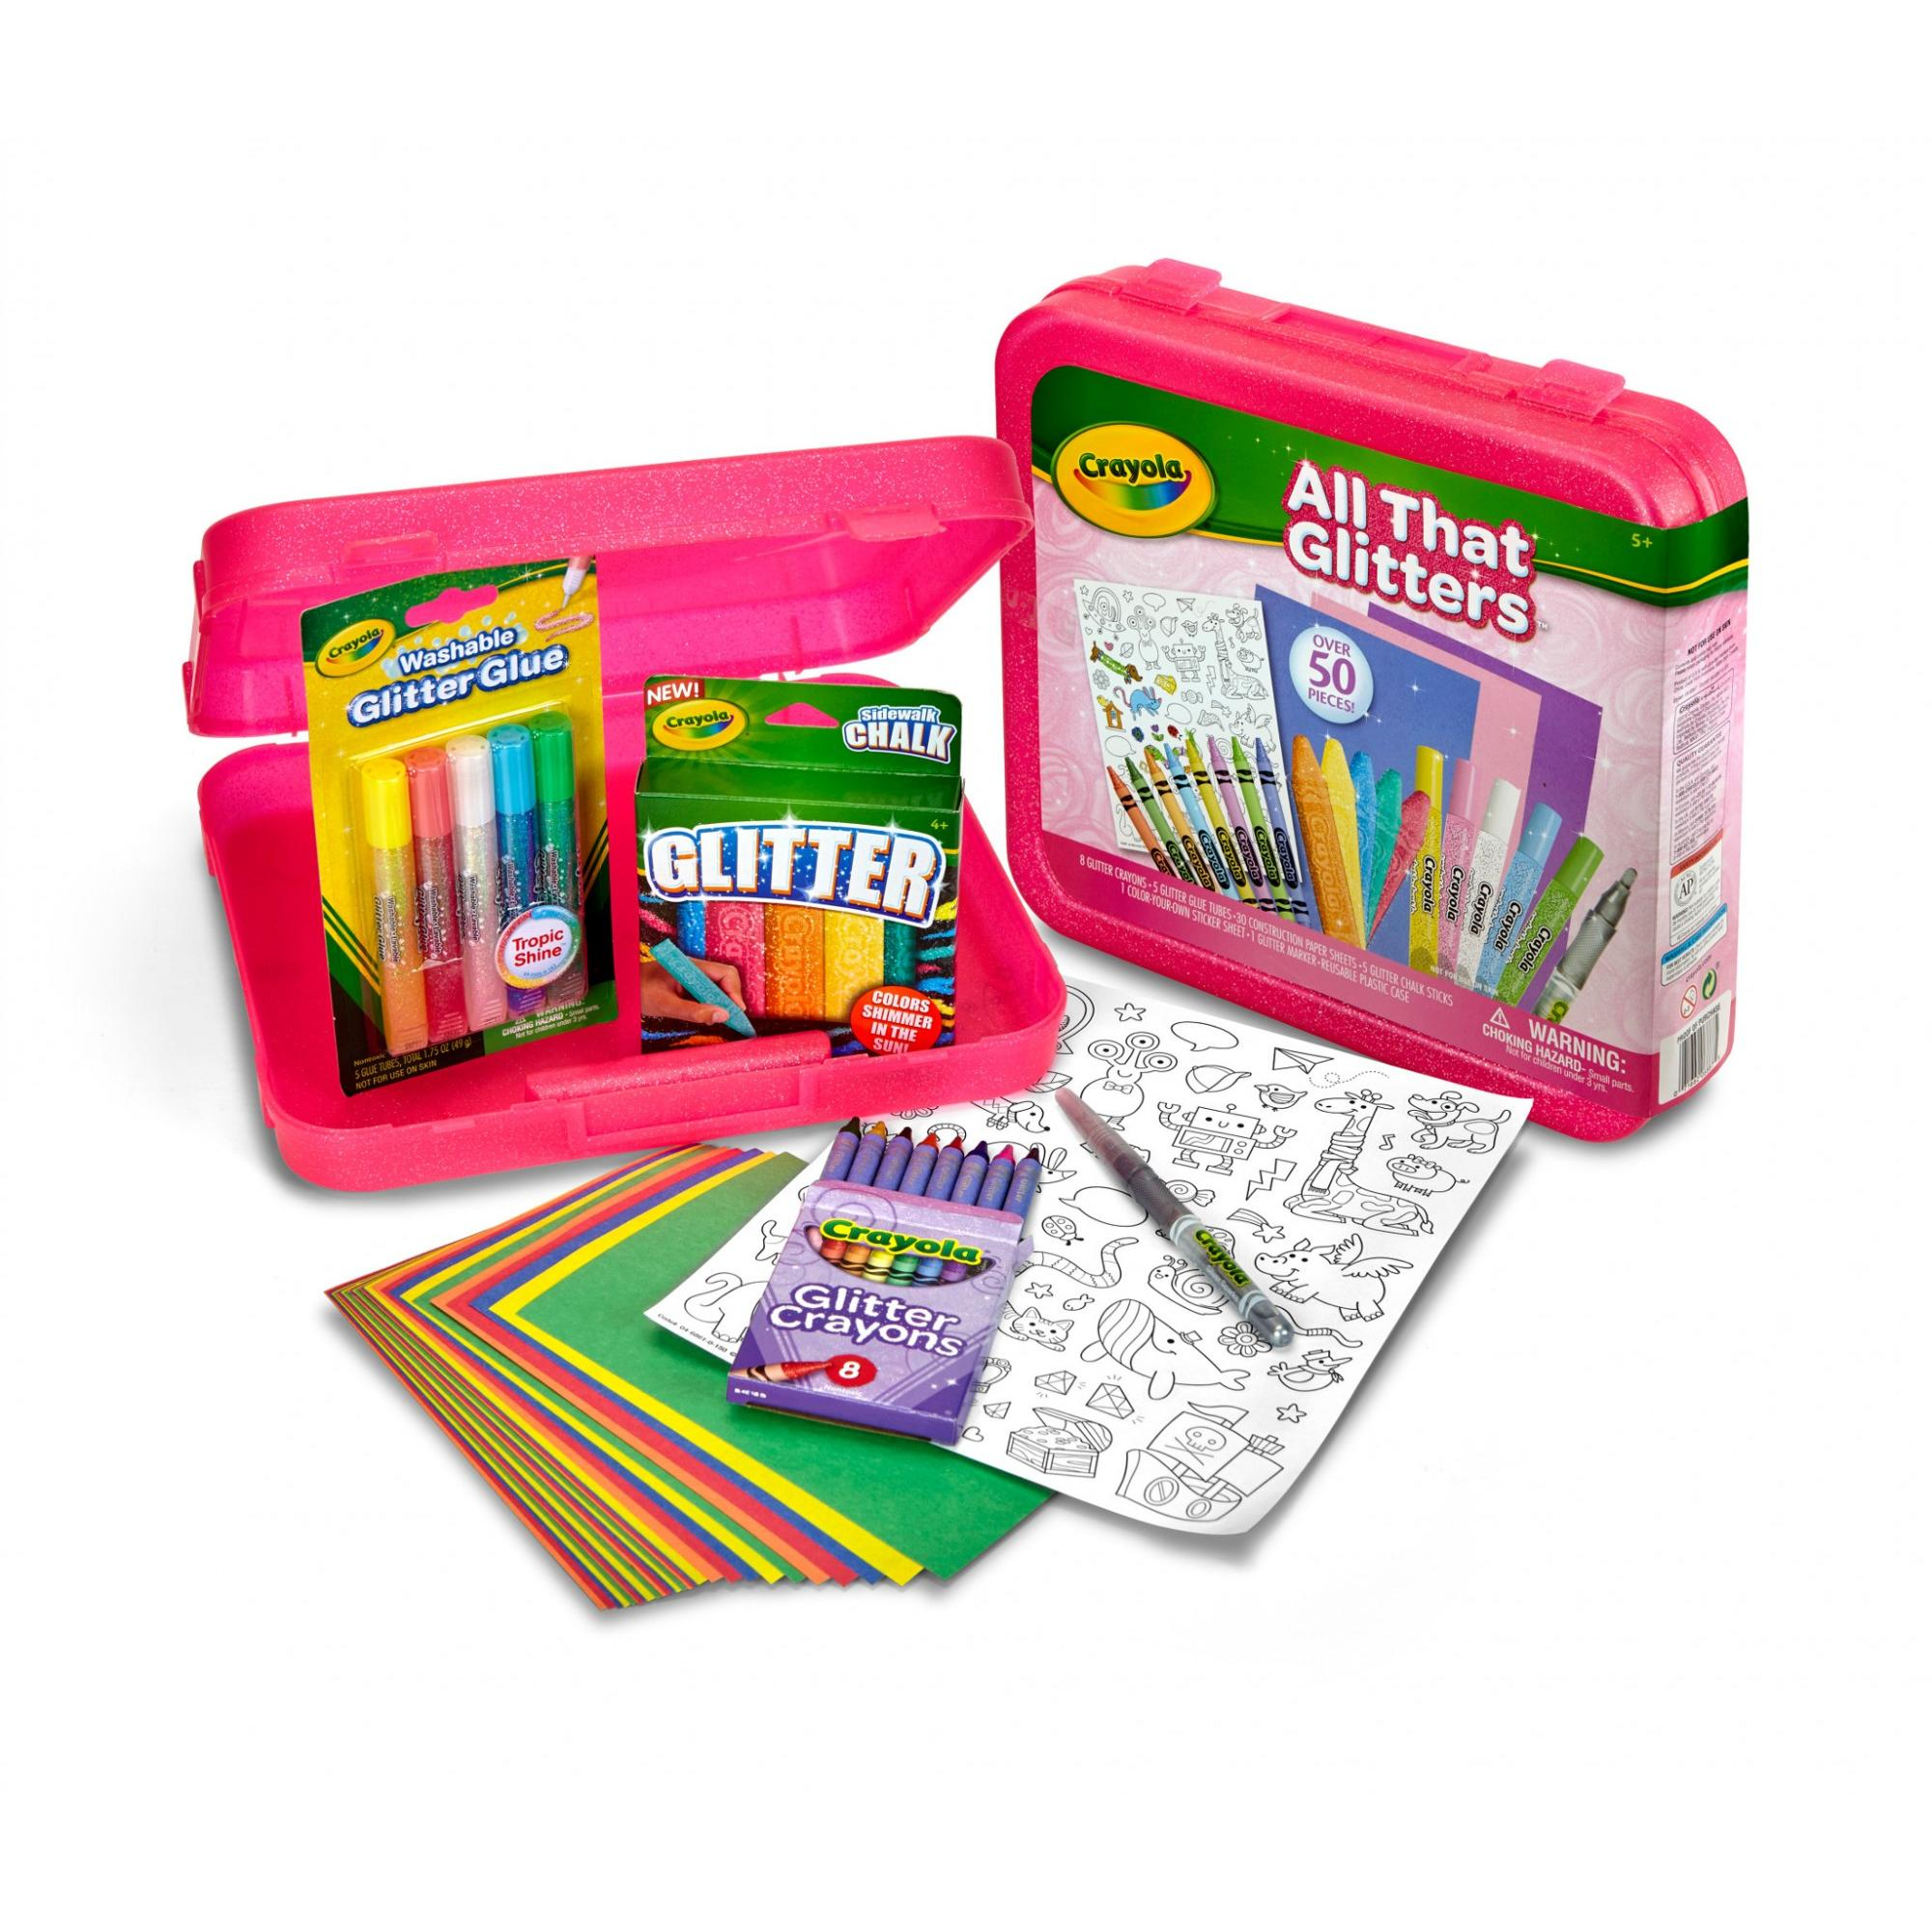 Crayola All That Glitters Art Case, 50 Pieces, Ages 3+